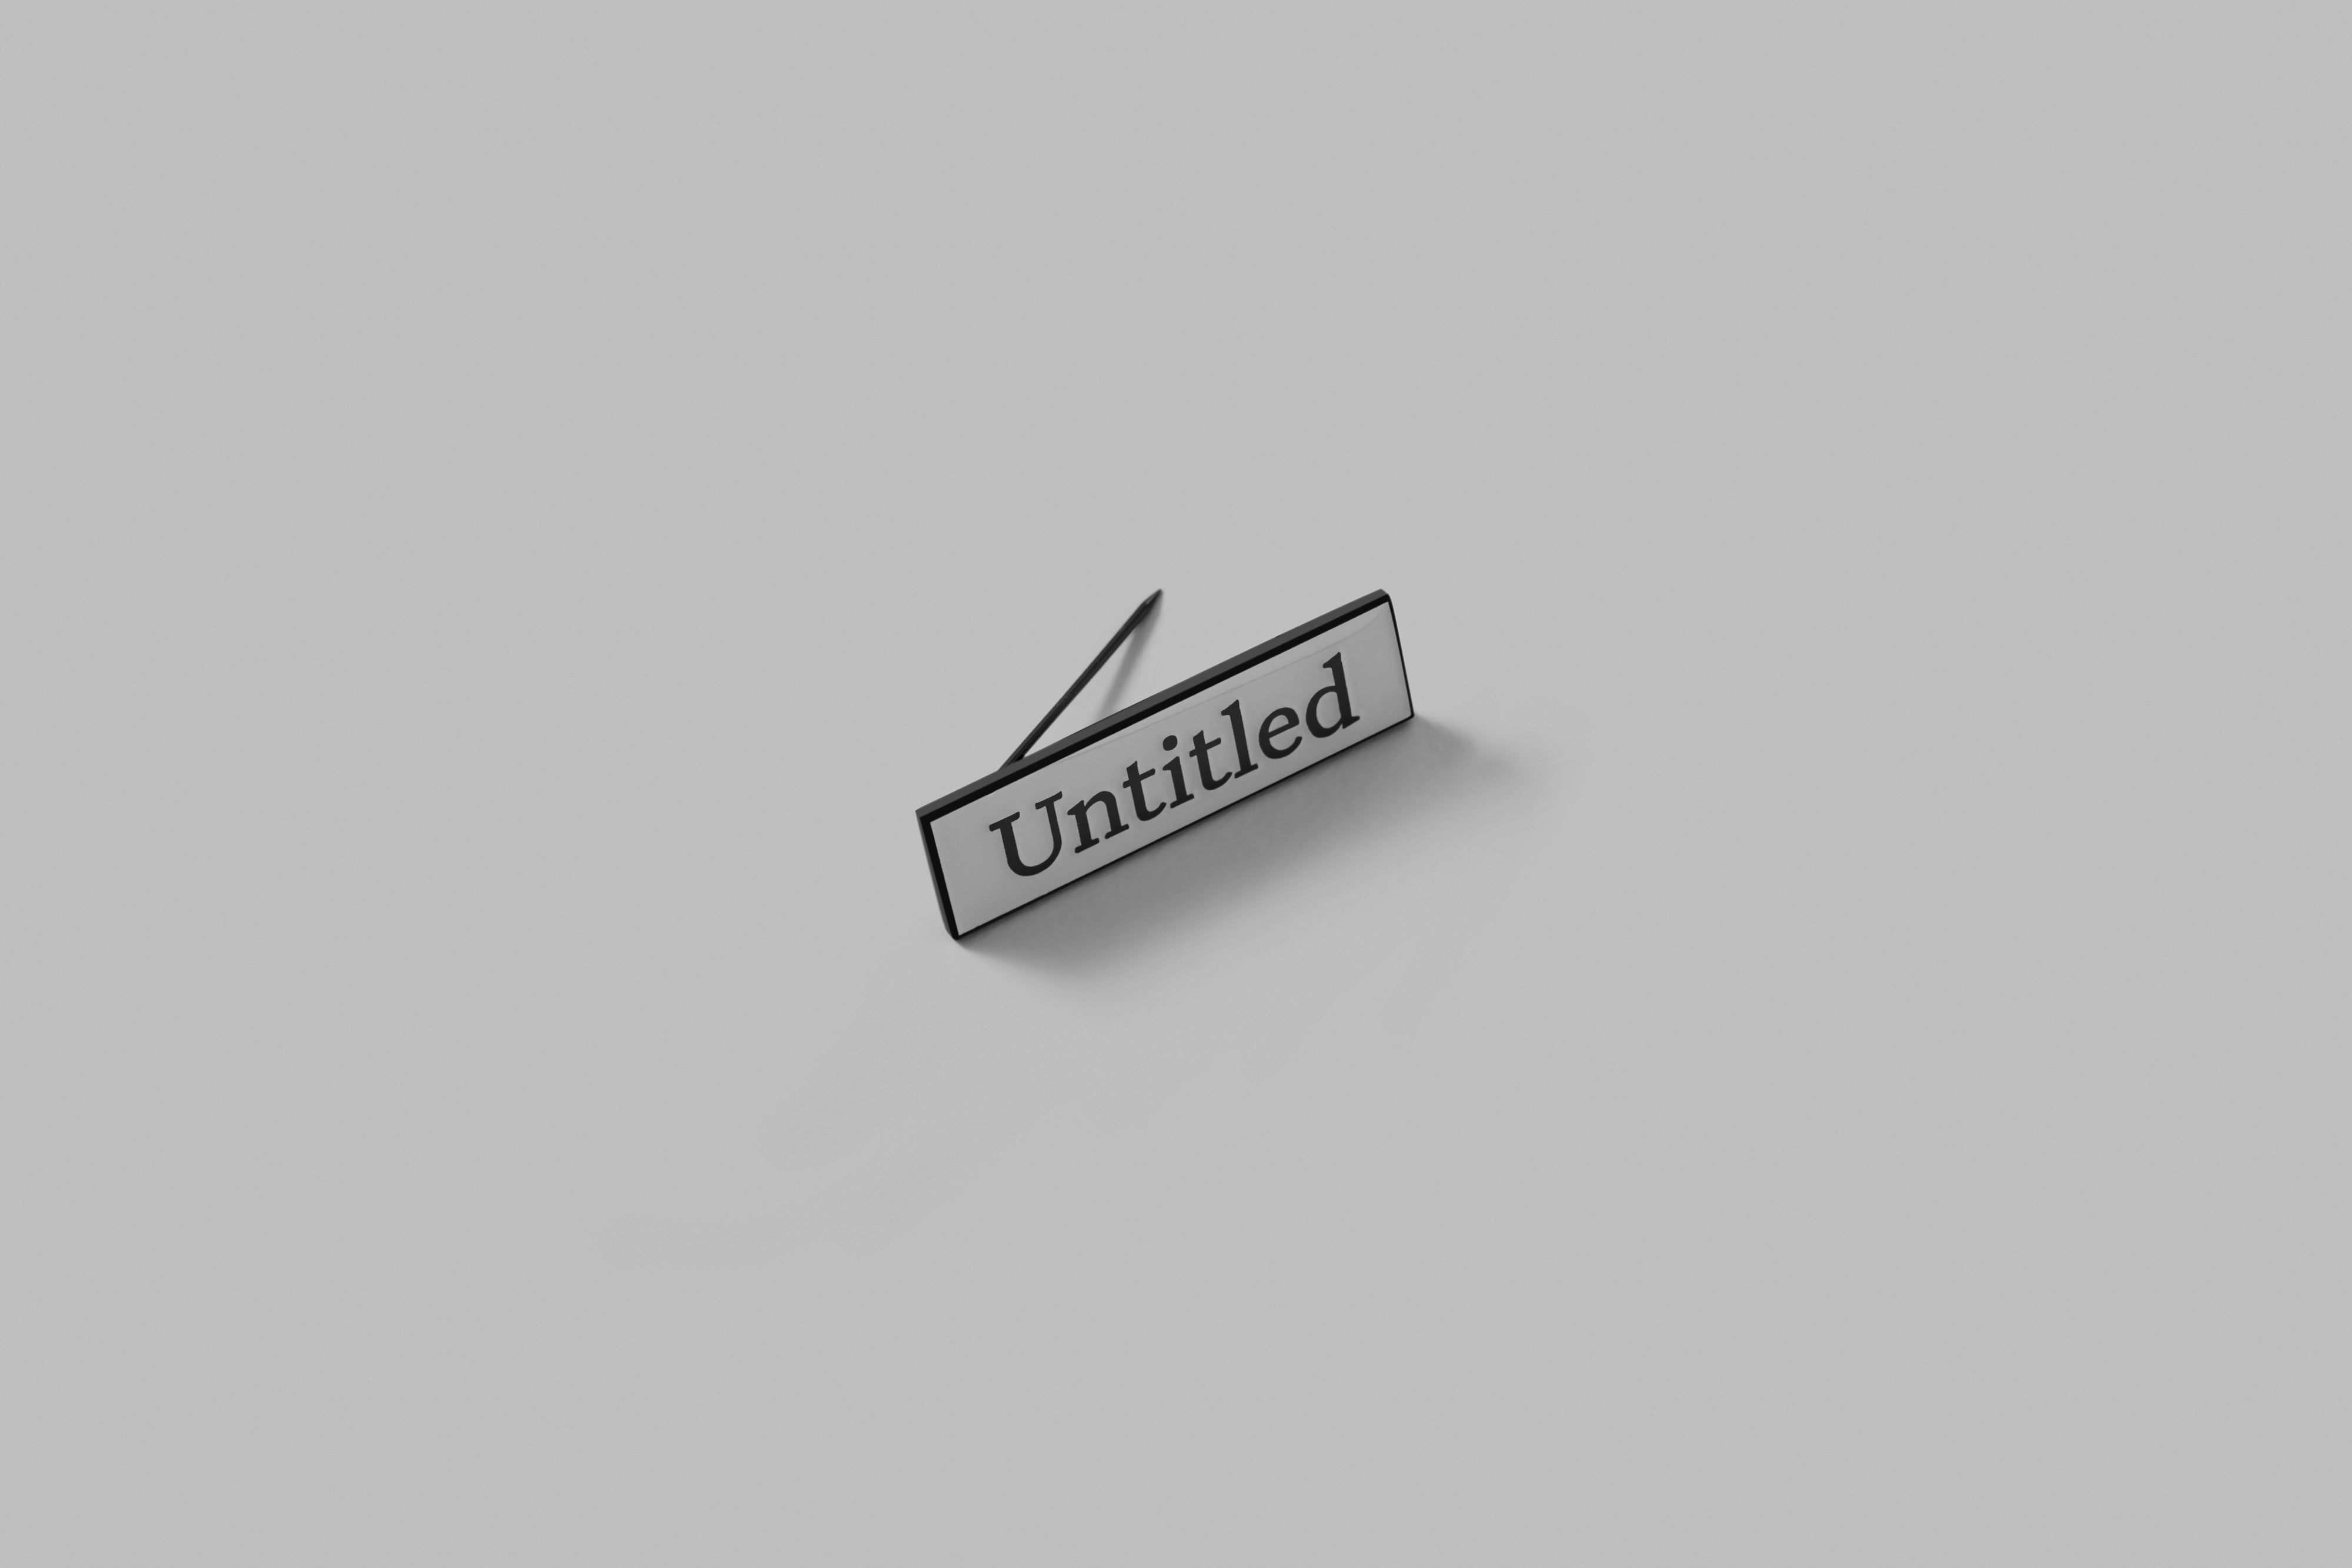 Untitled Serif Badge